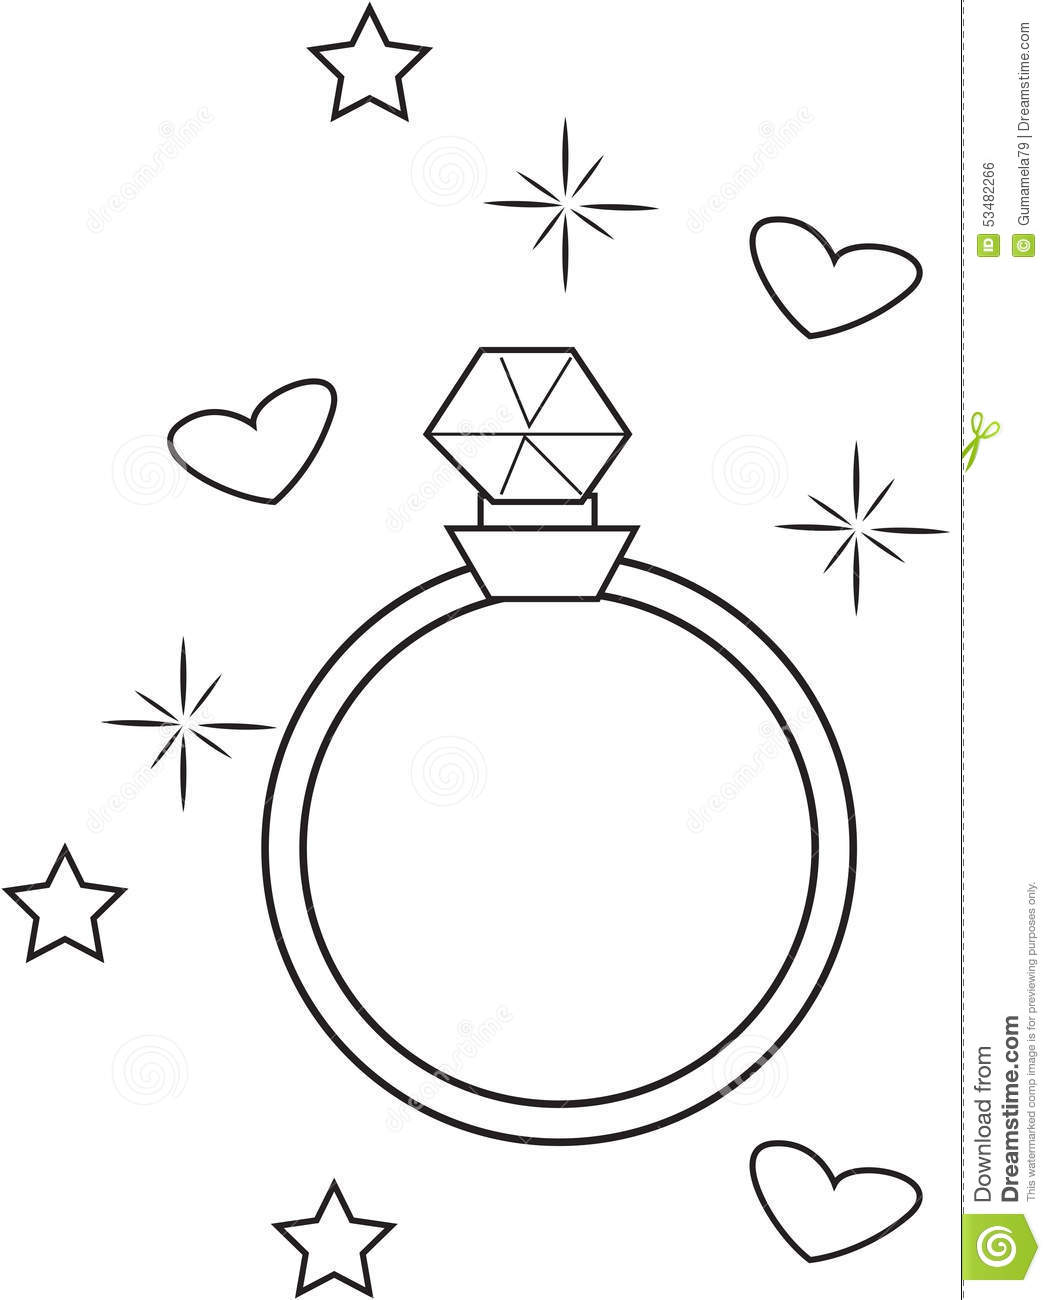 Diamond Ring Coloring Pages in addition Aluminum Lift Slide Doors likewise Educima   dibujo Para Colorear Jirafa Dl17684 besides Consumer moreover 69. on color key